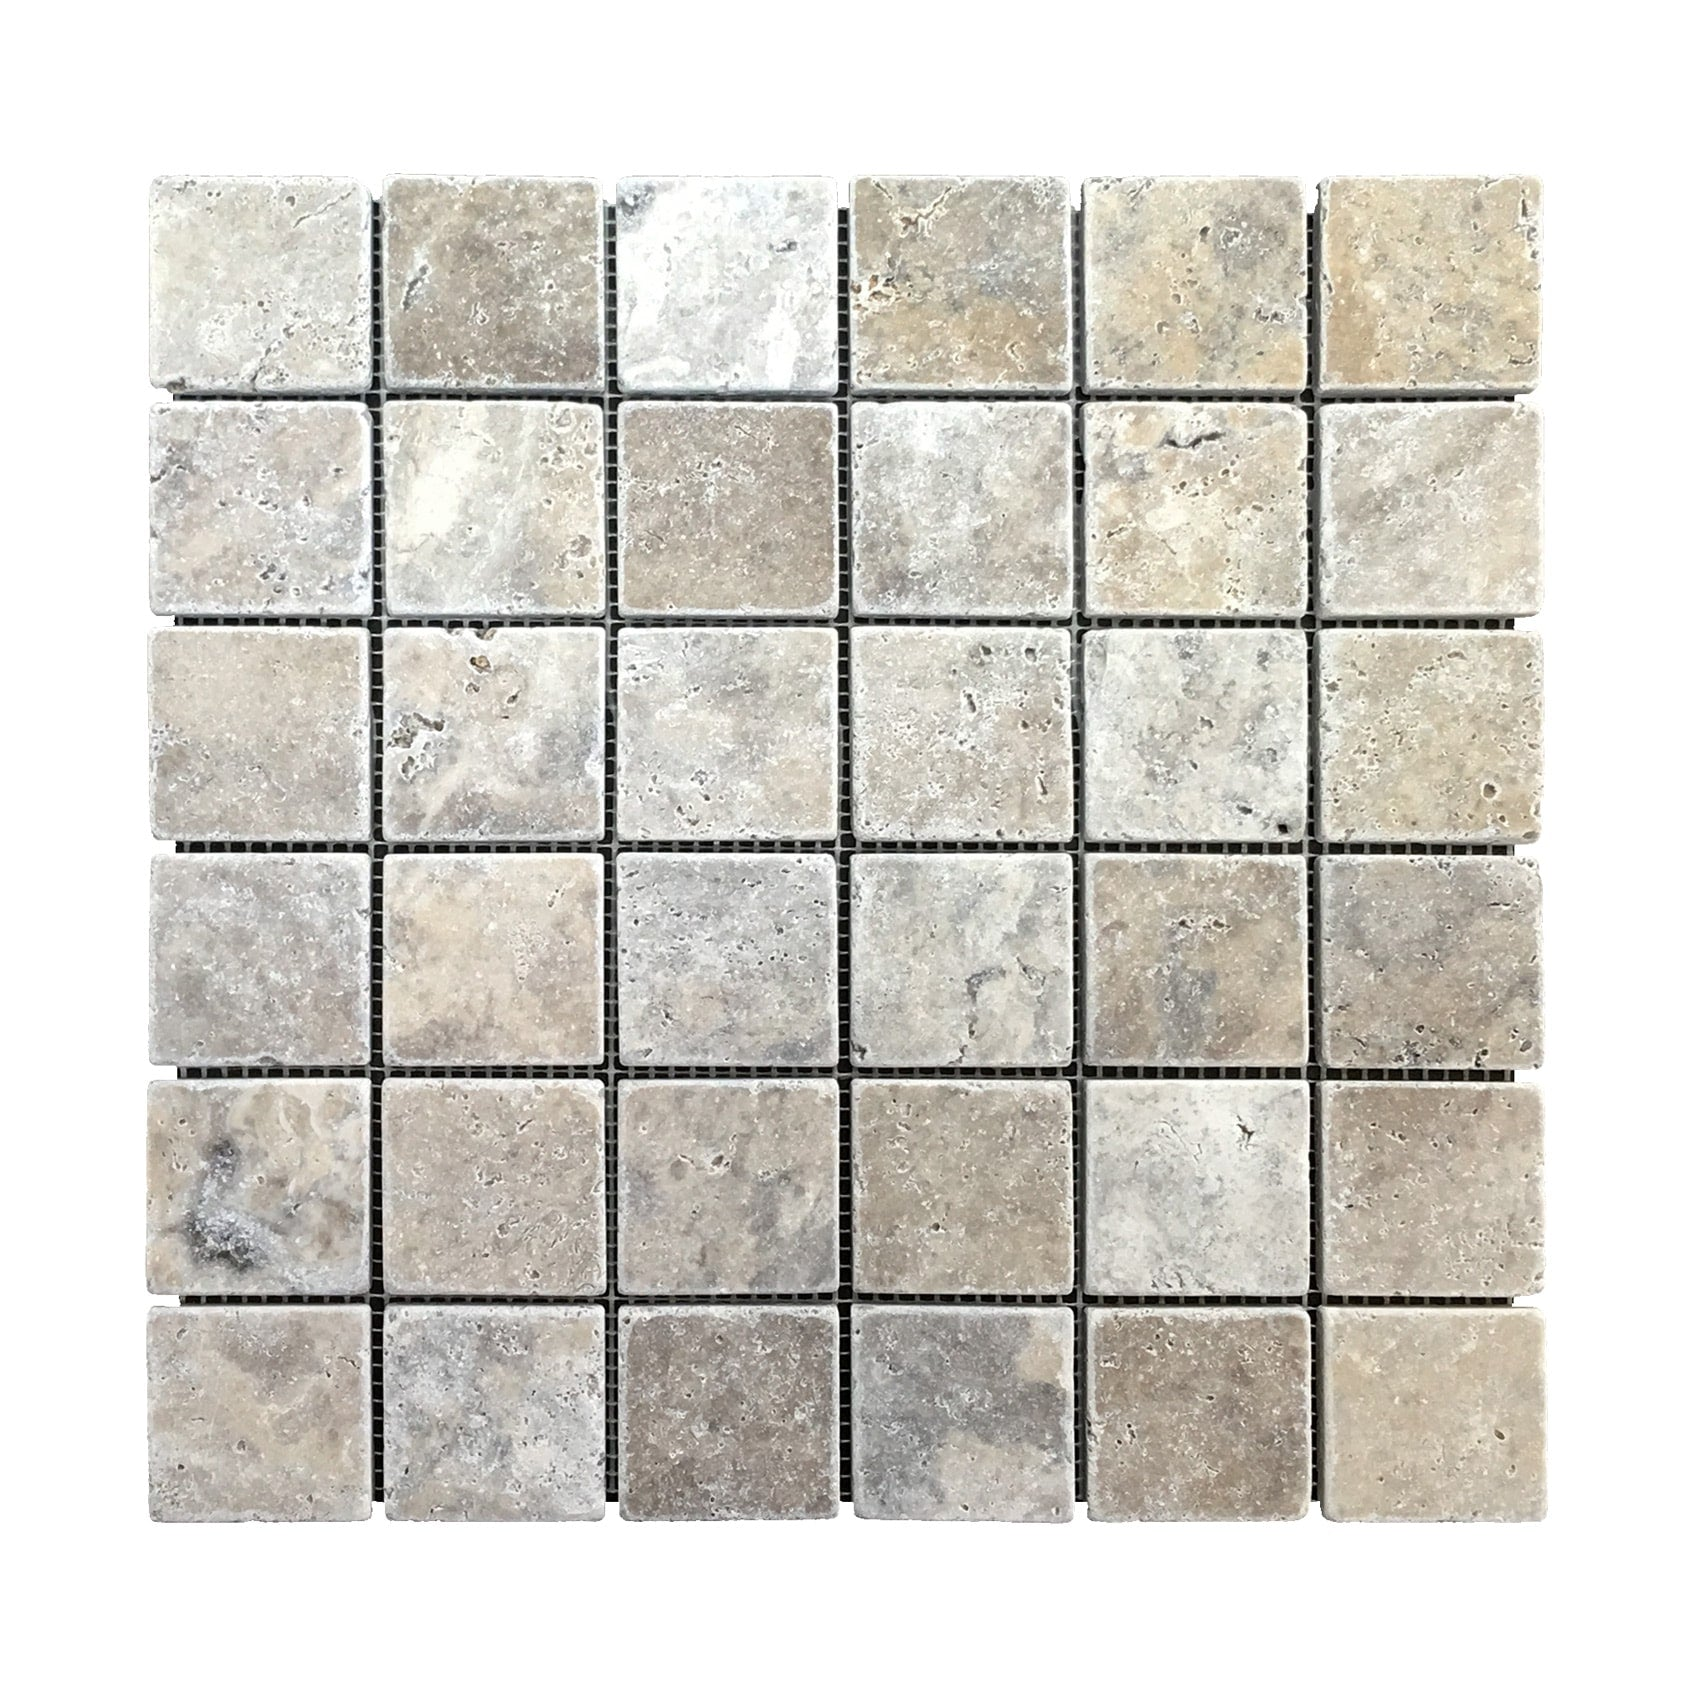 Travertine Silver Mosaic 2″ x 2″ Tiles